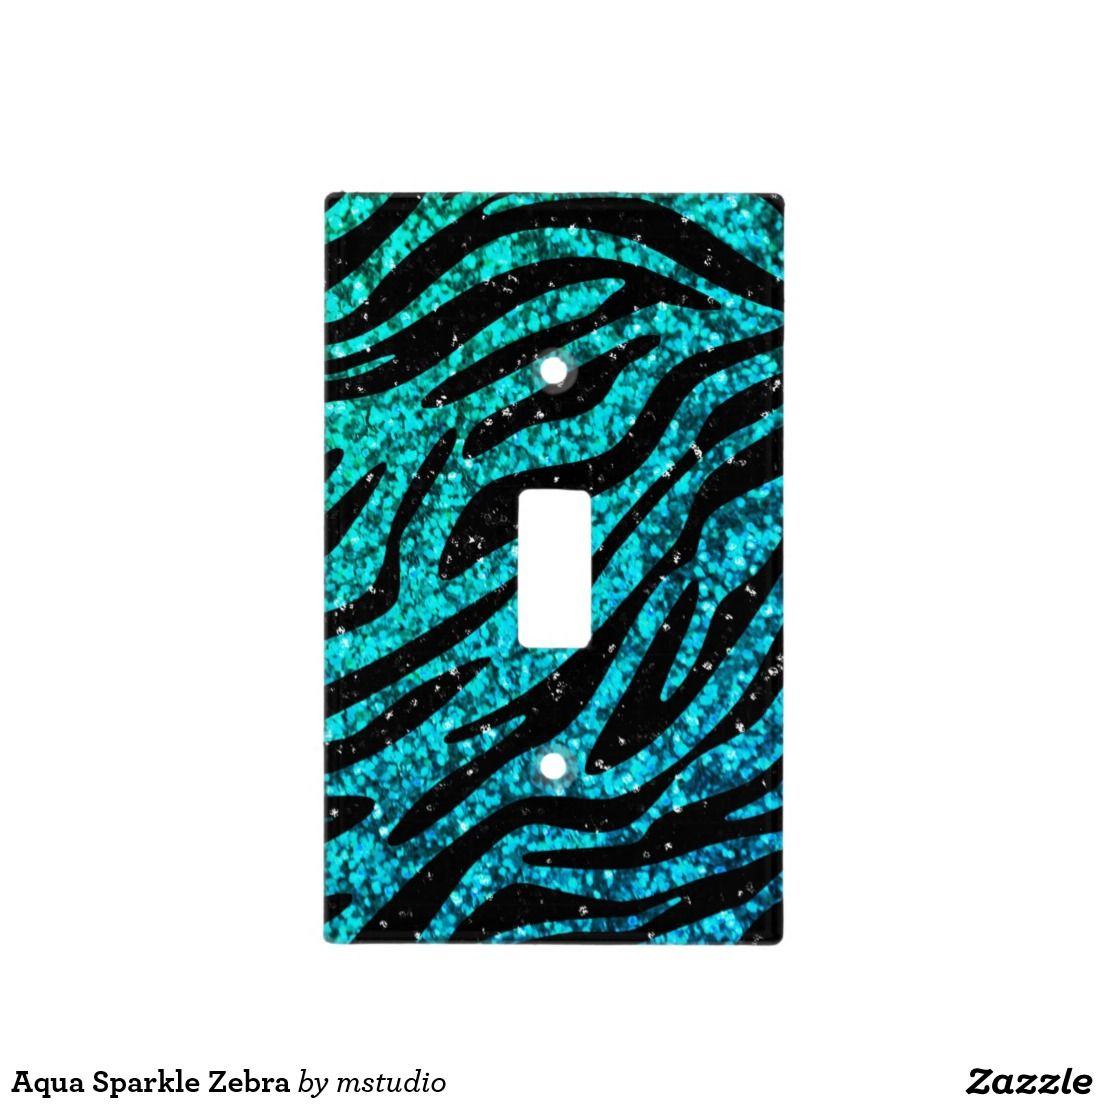 Aqua Sparkle Zebra Light Switch Cover